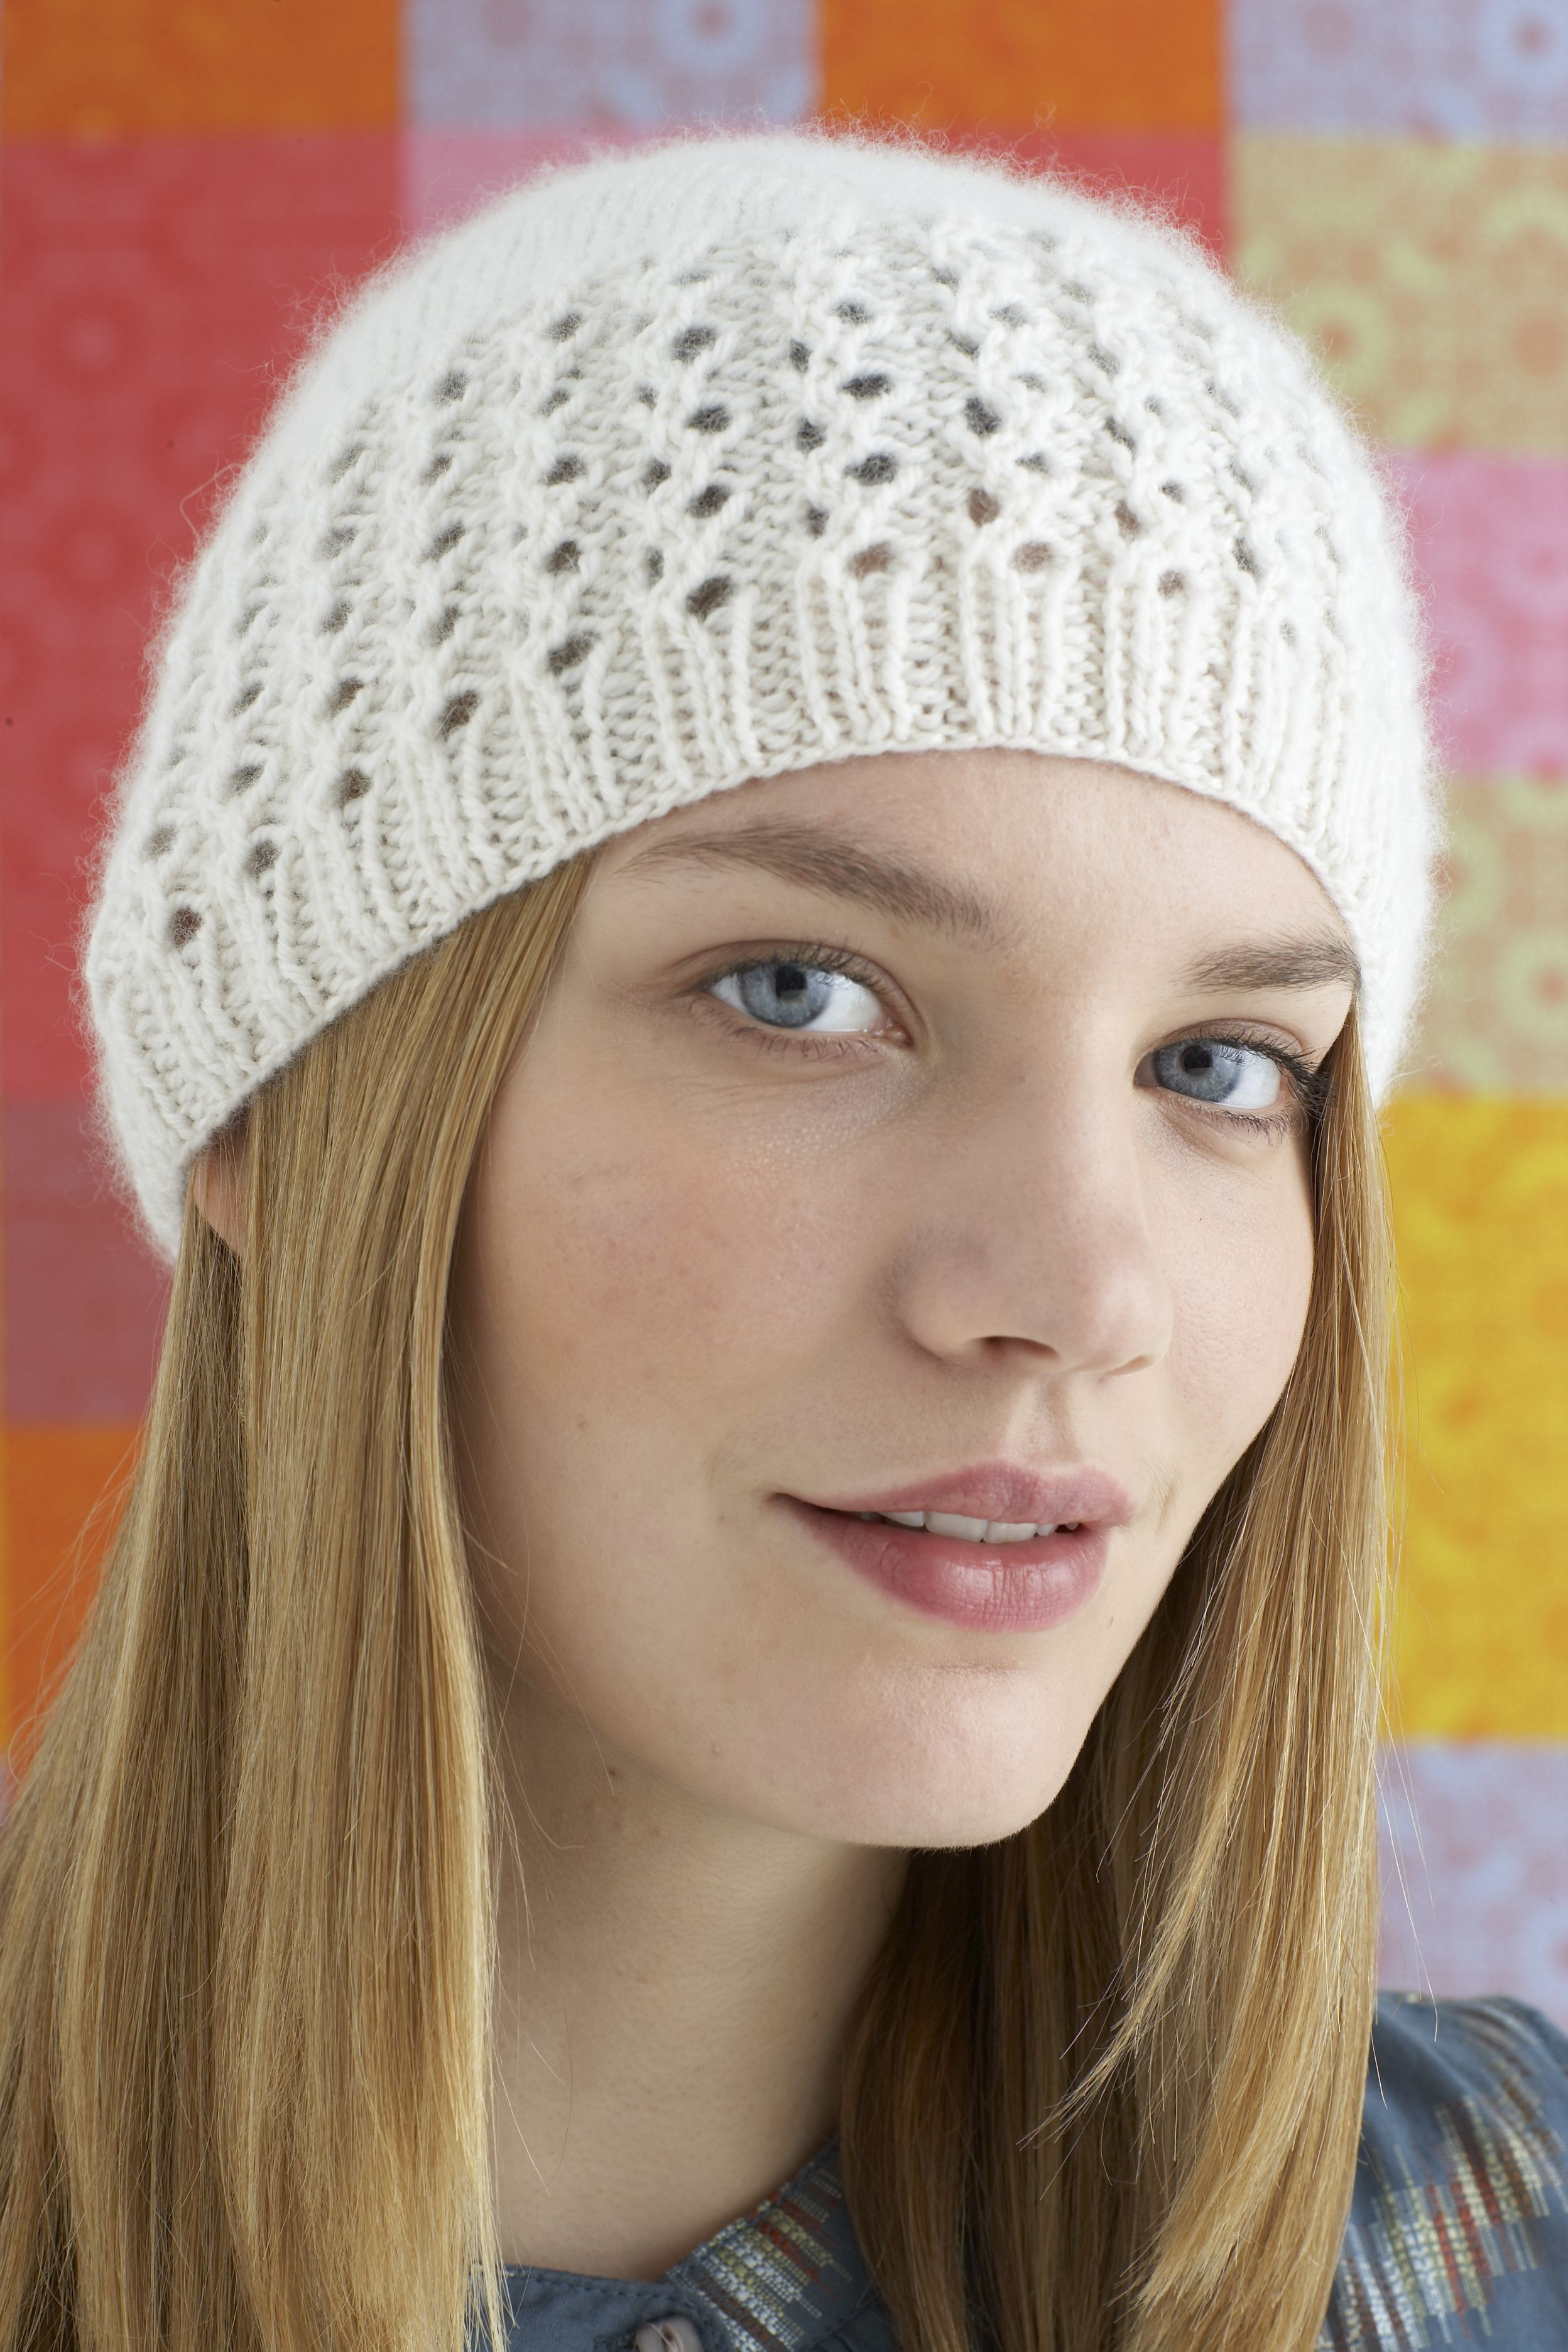 Double knitting lace hat patterns free google search knitting double knitting lace hat patterns free google search bankloansurffo Images